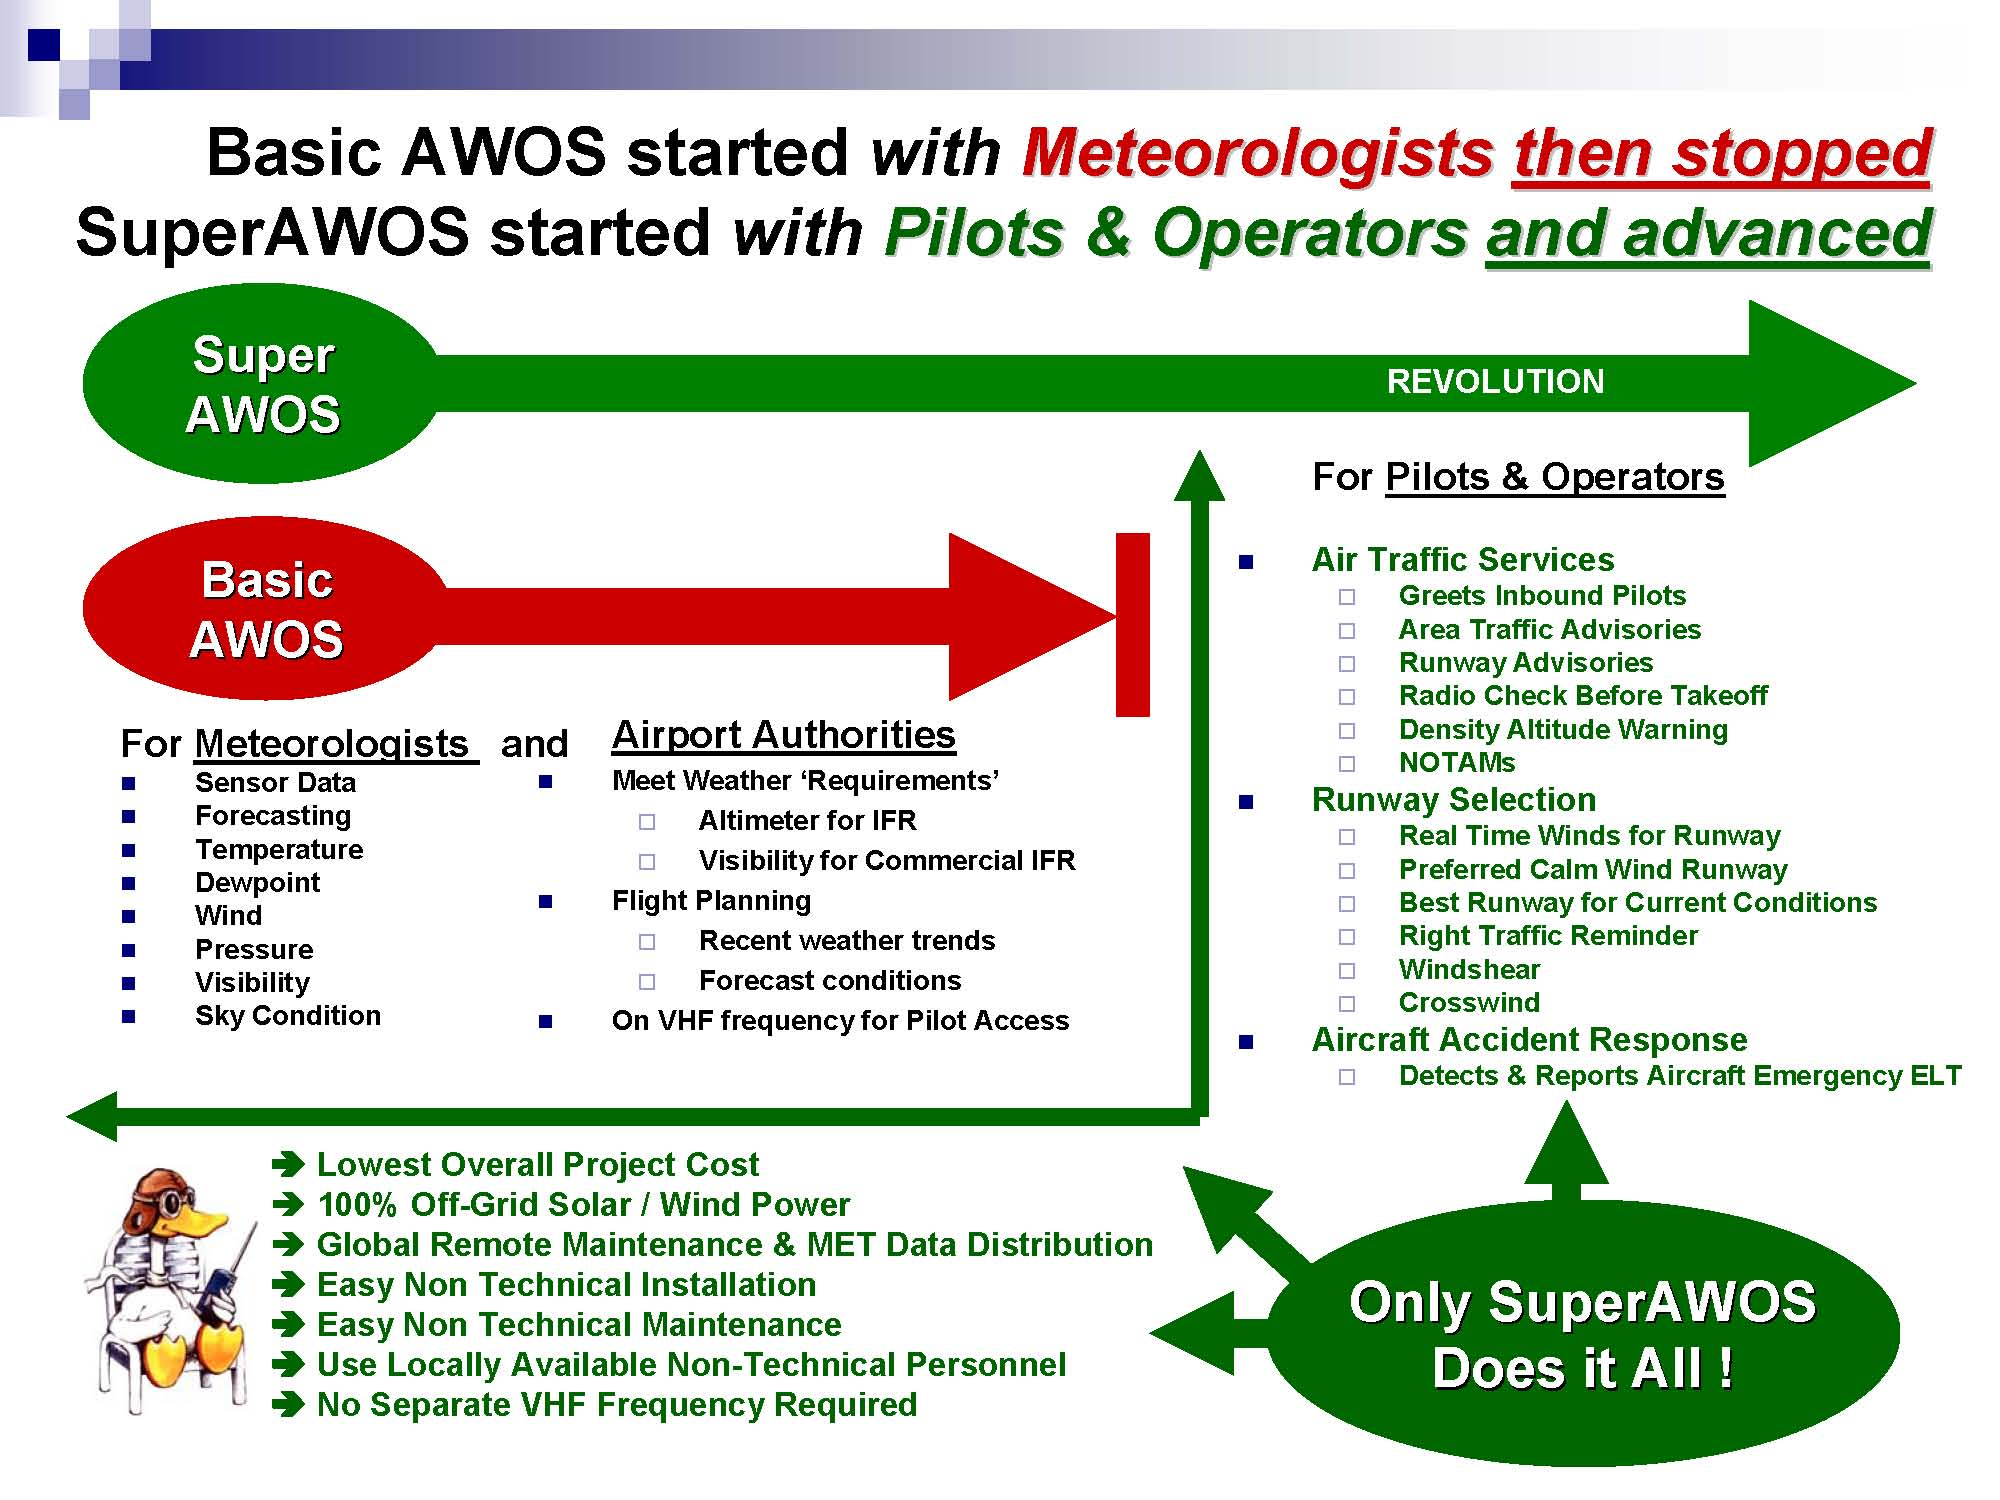 Evolution of AWOS Page 2